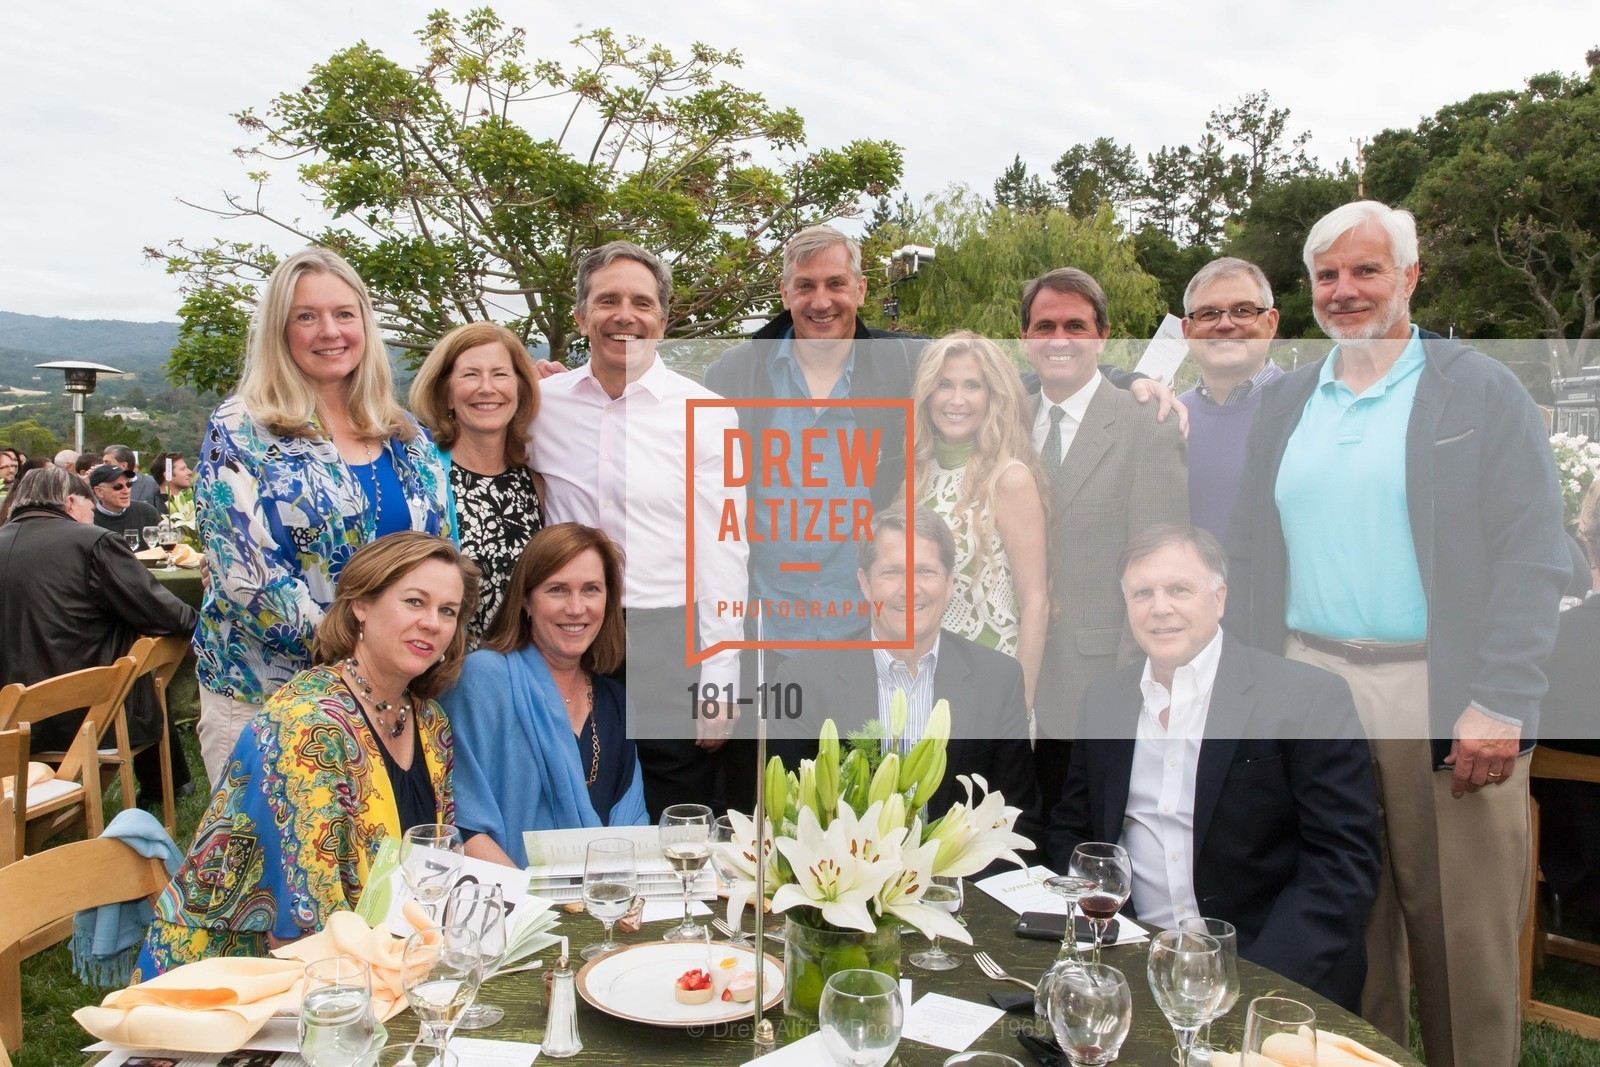 Rhonda Brier, Amy Boyle, Ellen Lucier, Joyn Boyle, Mark Brier, Sherry Cagan, Laird Cagan, Alan DeClerq, Jim Lucier, Steve Howe, LYME AID 2015 Benefiting the Bay Area Lyme Foundation, Private Residence, May 16th, 2015,Drew Altizer, Drew Altizer Photography, full-service agency, private events, San Francisco photographer, photographer california